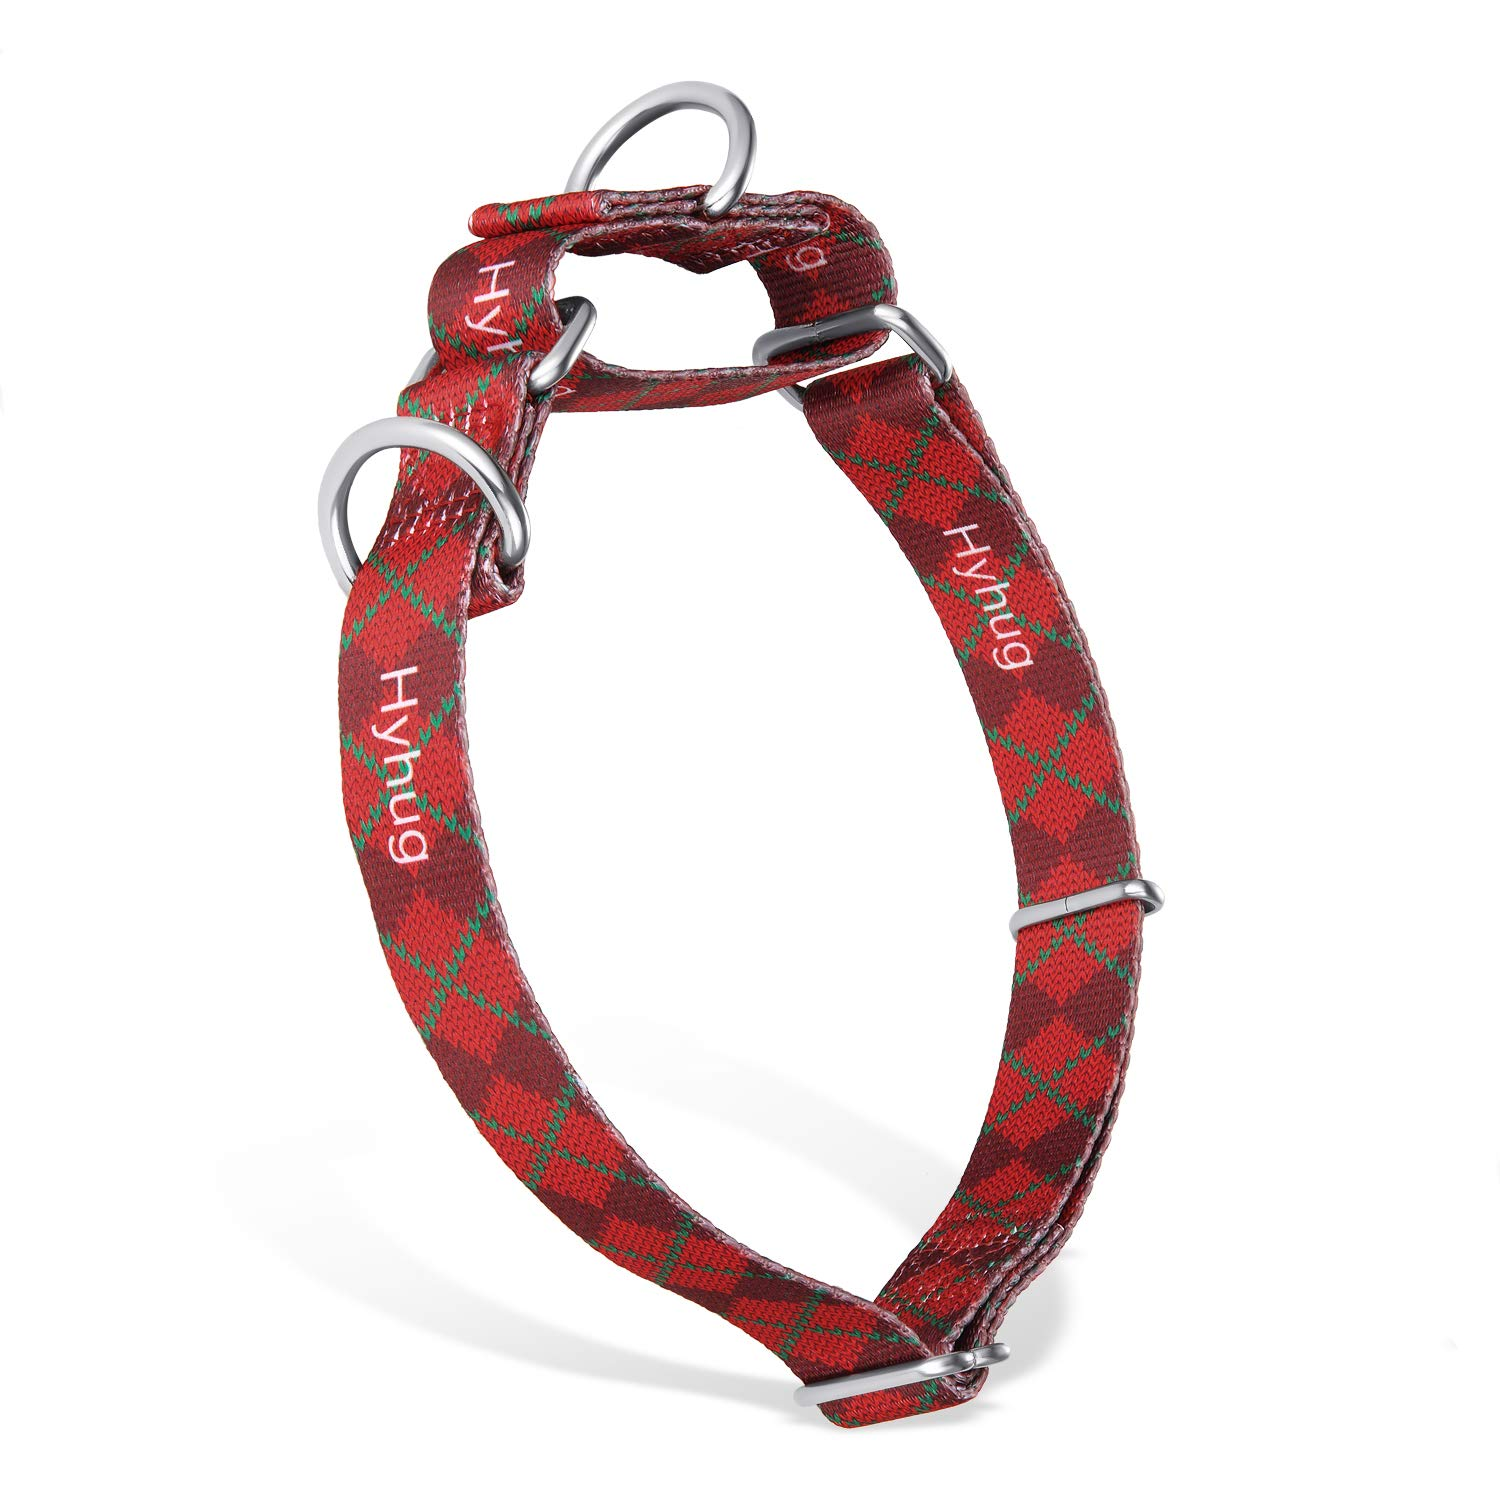 Hyhug Pets Upgraded Escape Proof Martingale Collar